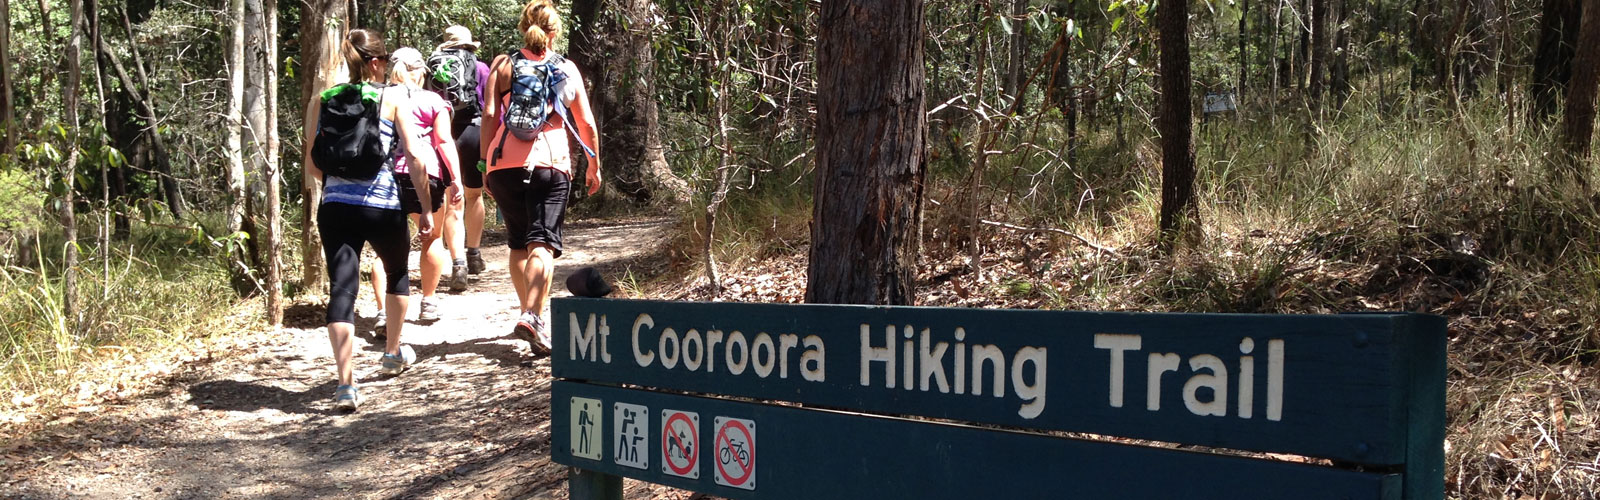 Mt Cooroora Hiking trail project